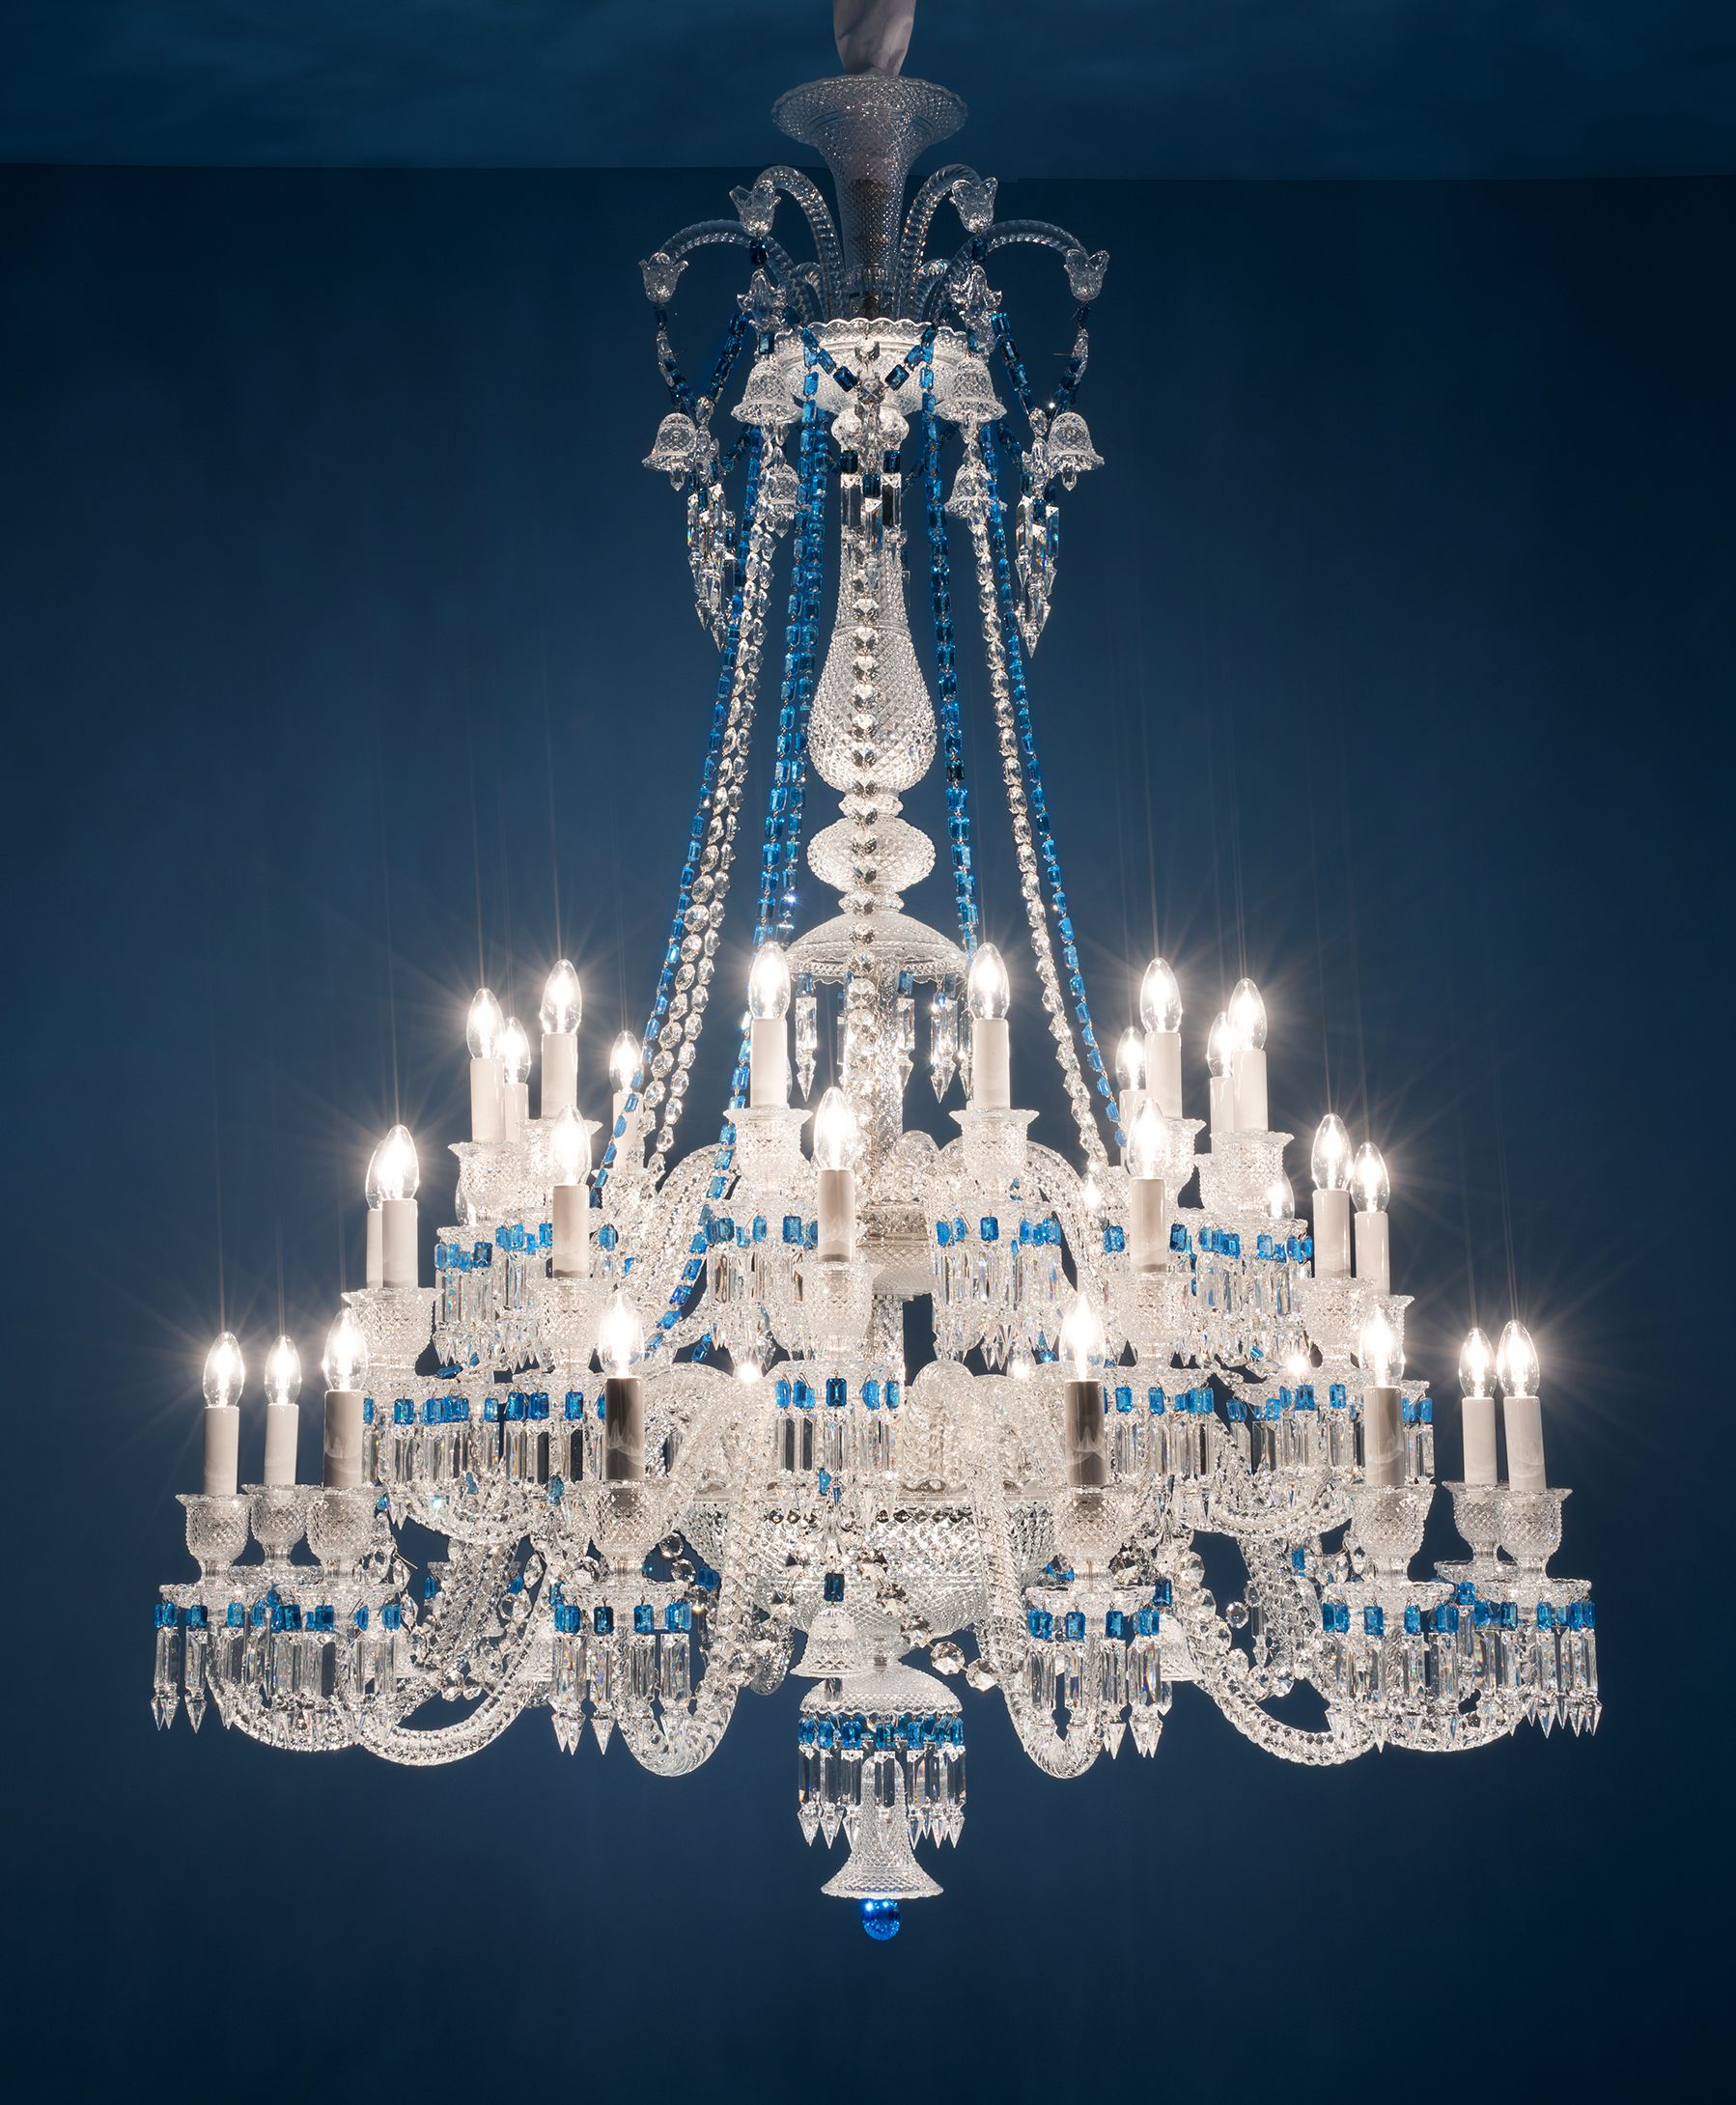 Crystal Chandelier Chandeliers Lighting with Blue Crystal